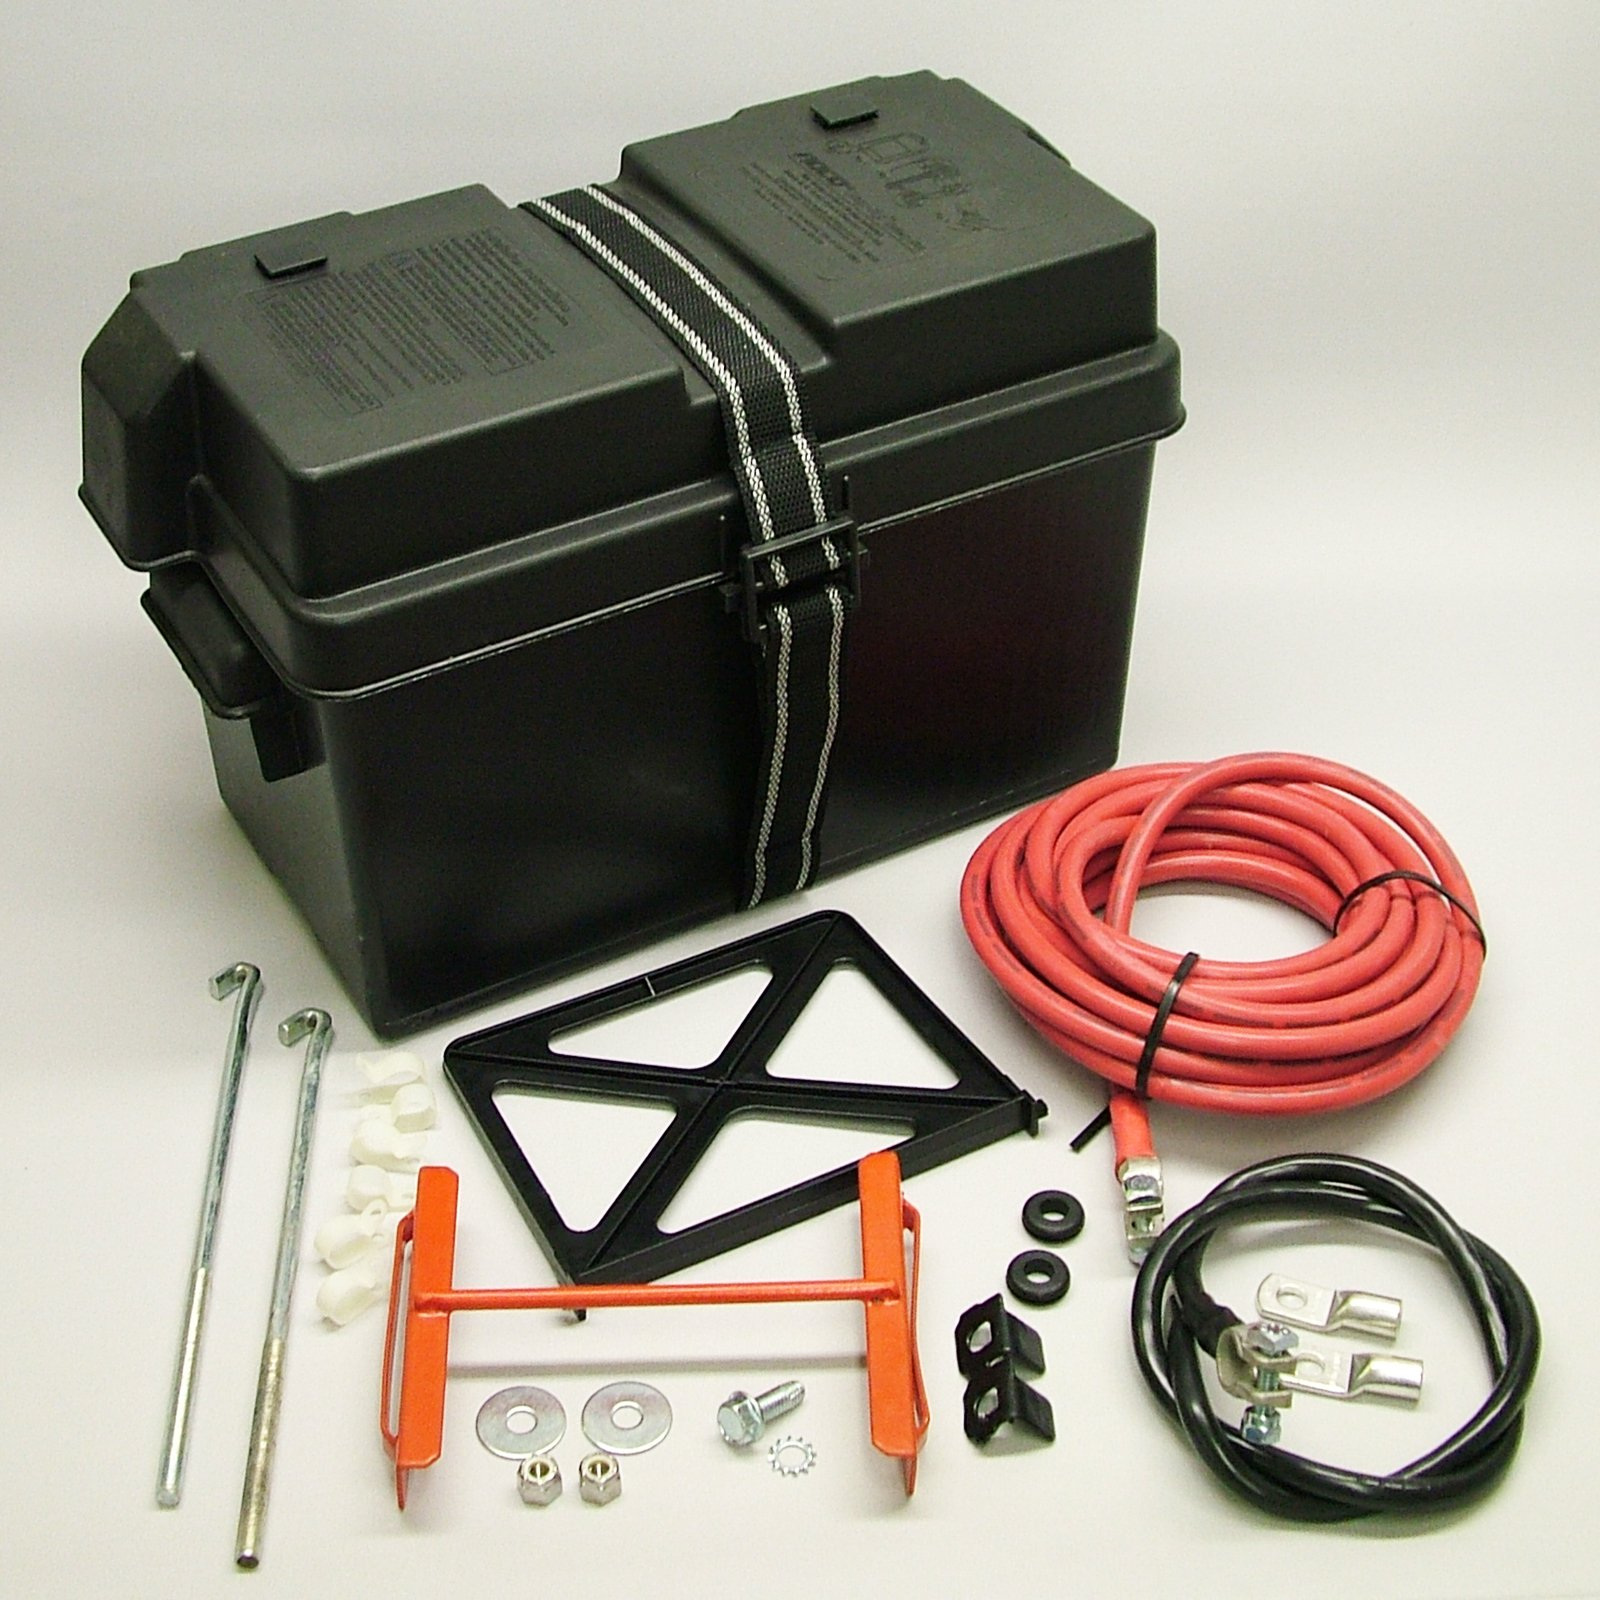 Speed G1200A Battery Relocation Kit Trunk Mount Battery Kit w/Cables by Speed Unlimited